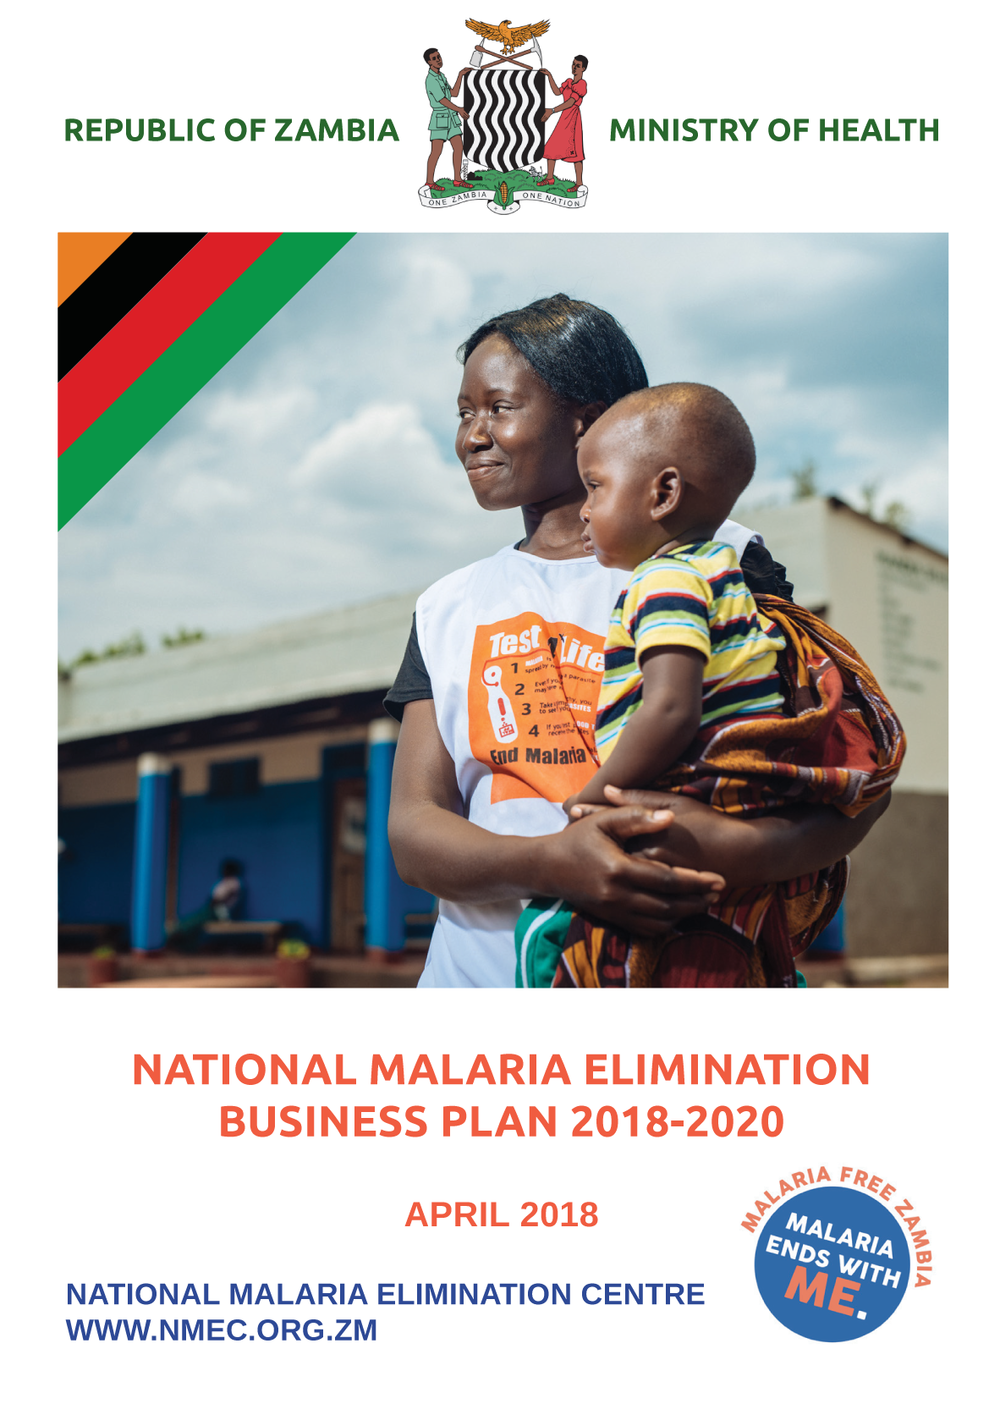 National Malaria Elimination Business Plan (2018-2020) - A strategy to bring partners together to provide scaled and sustainable financing to both measure and achieve malaria elimination...